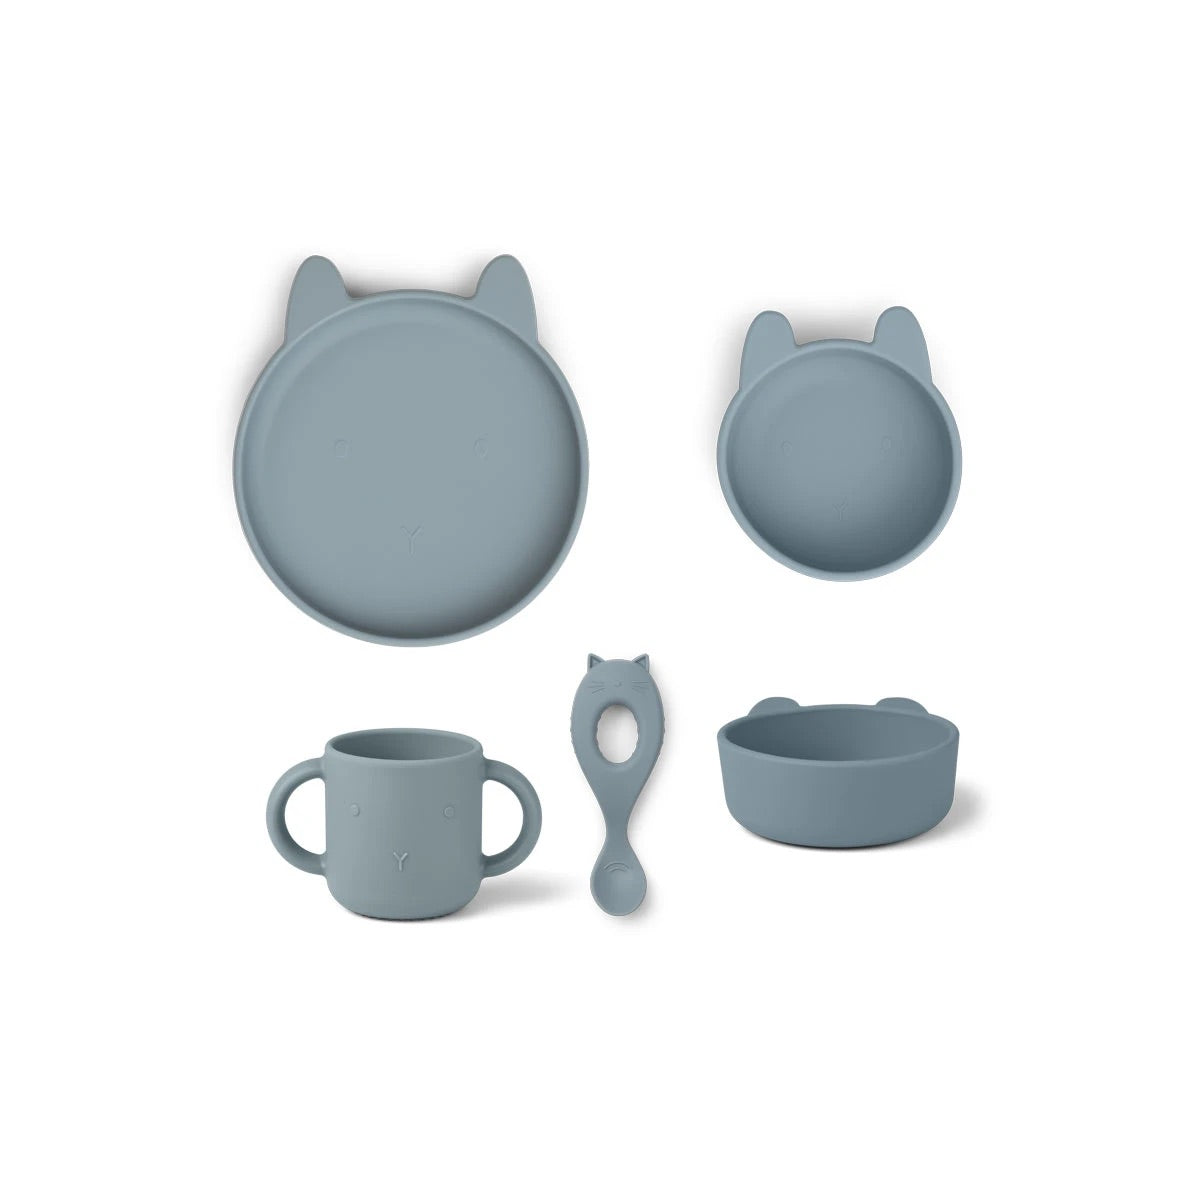 vivi silicone tableware 4 pack - baby - rabbit sea blue 海藍色小兔矽膠餐具套裝